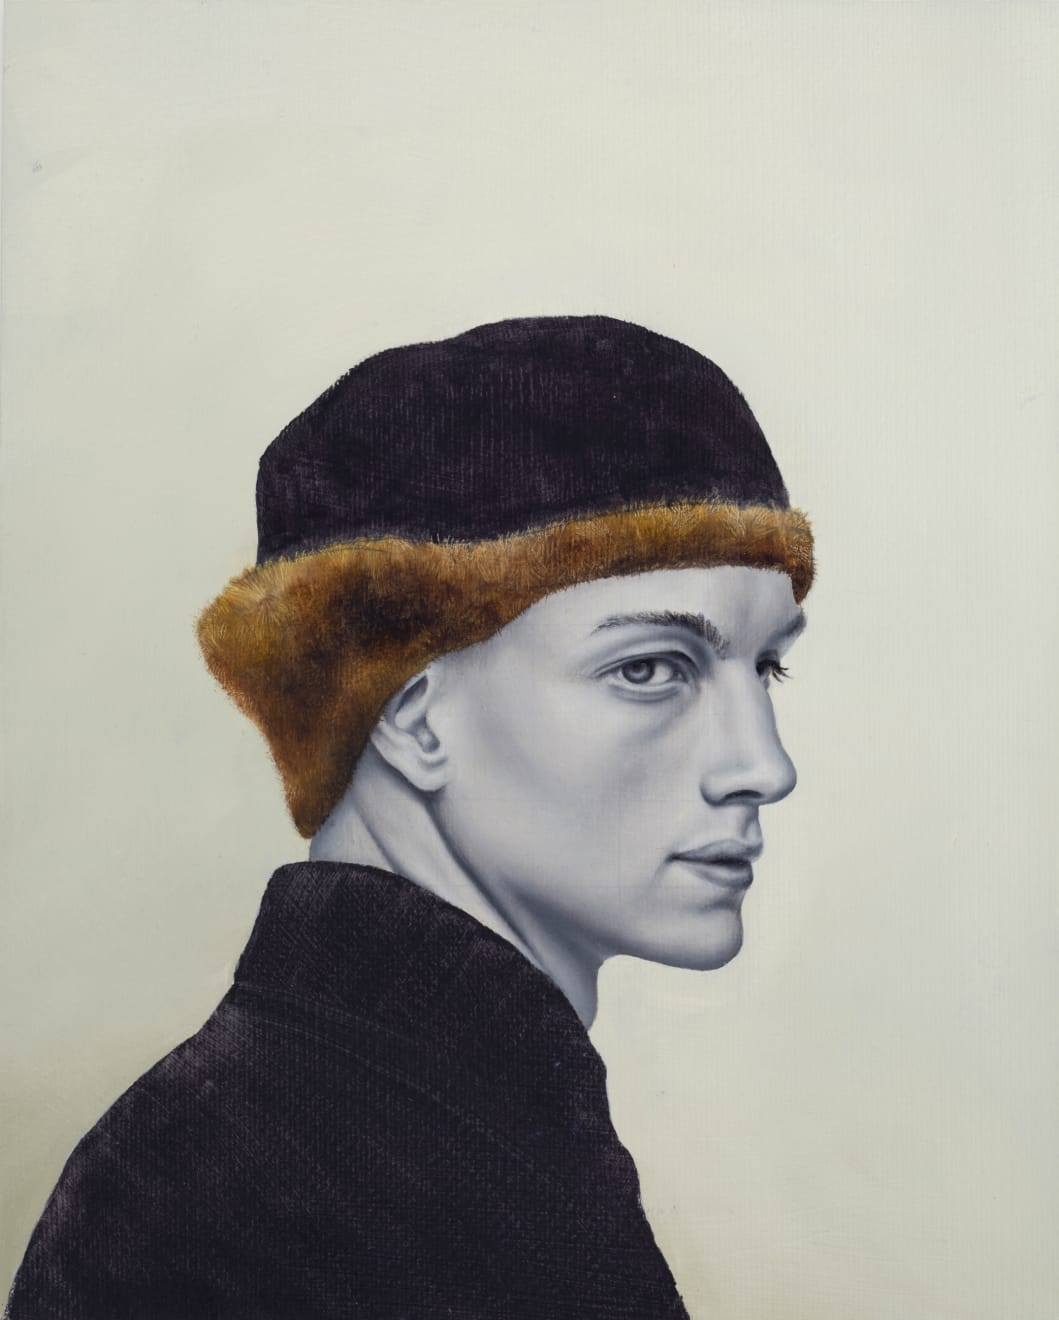 Pippa Young, Holbein's Hat, 2017